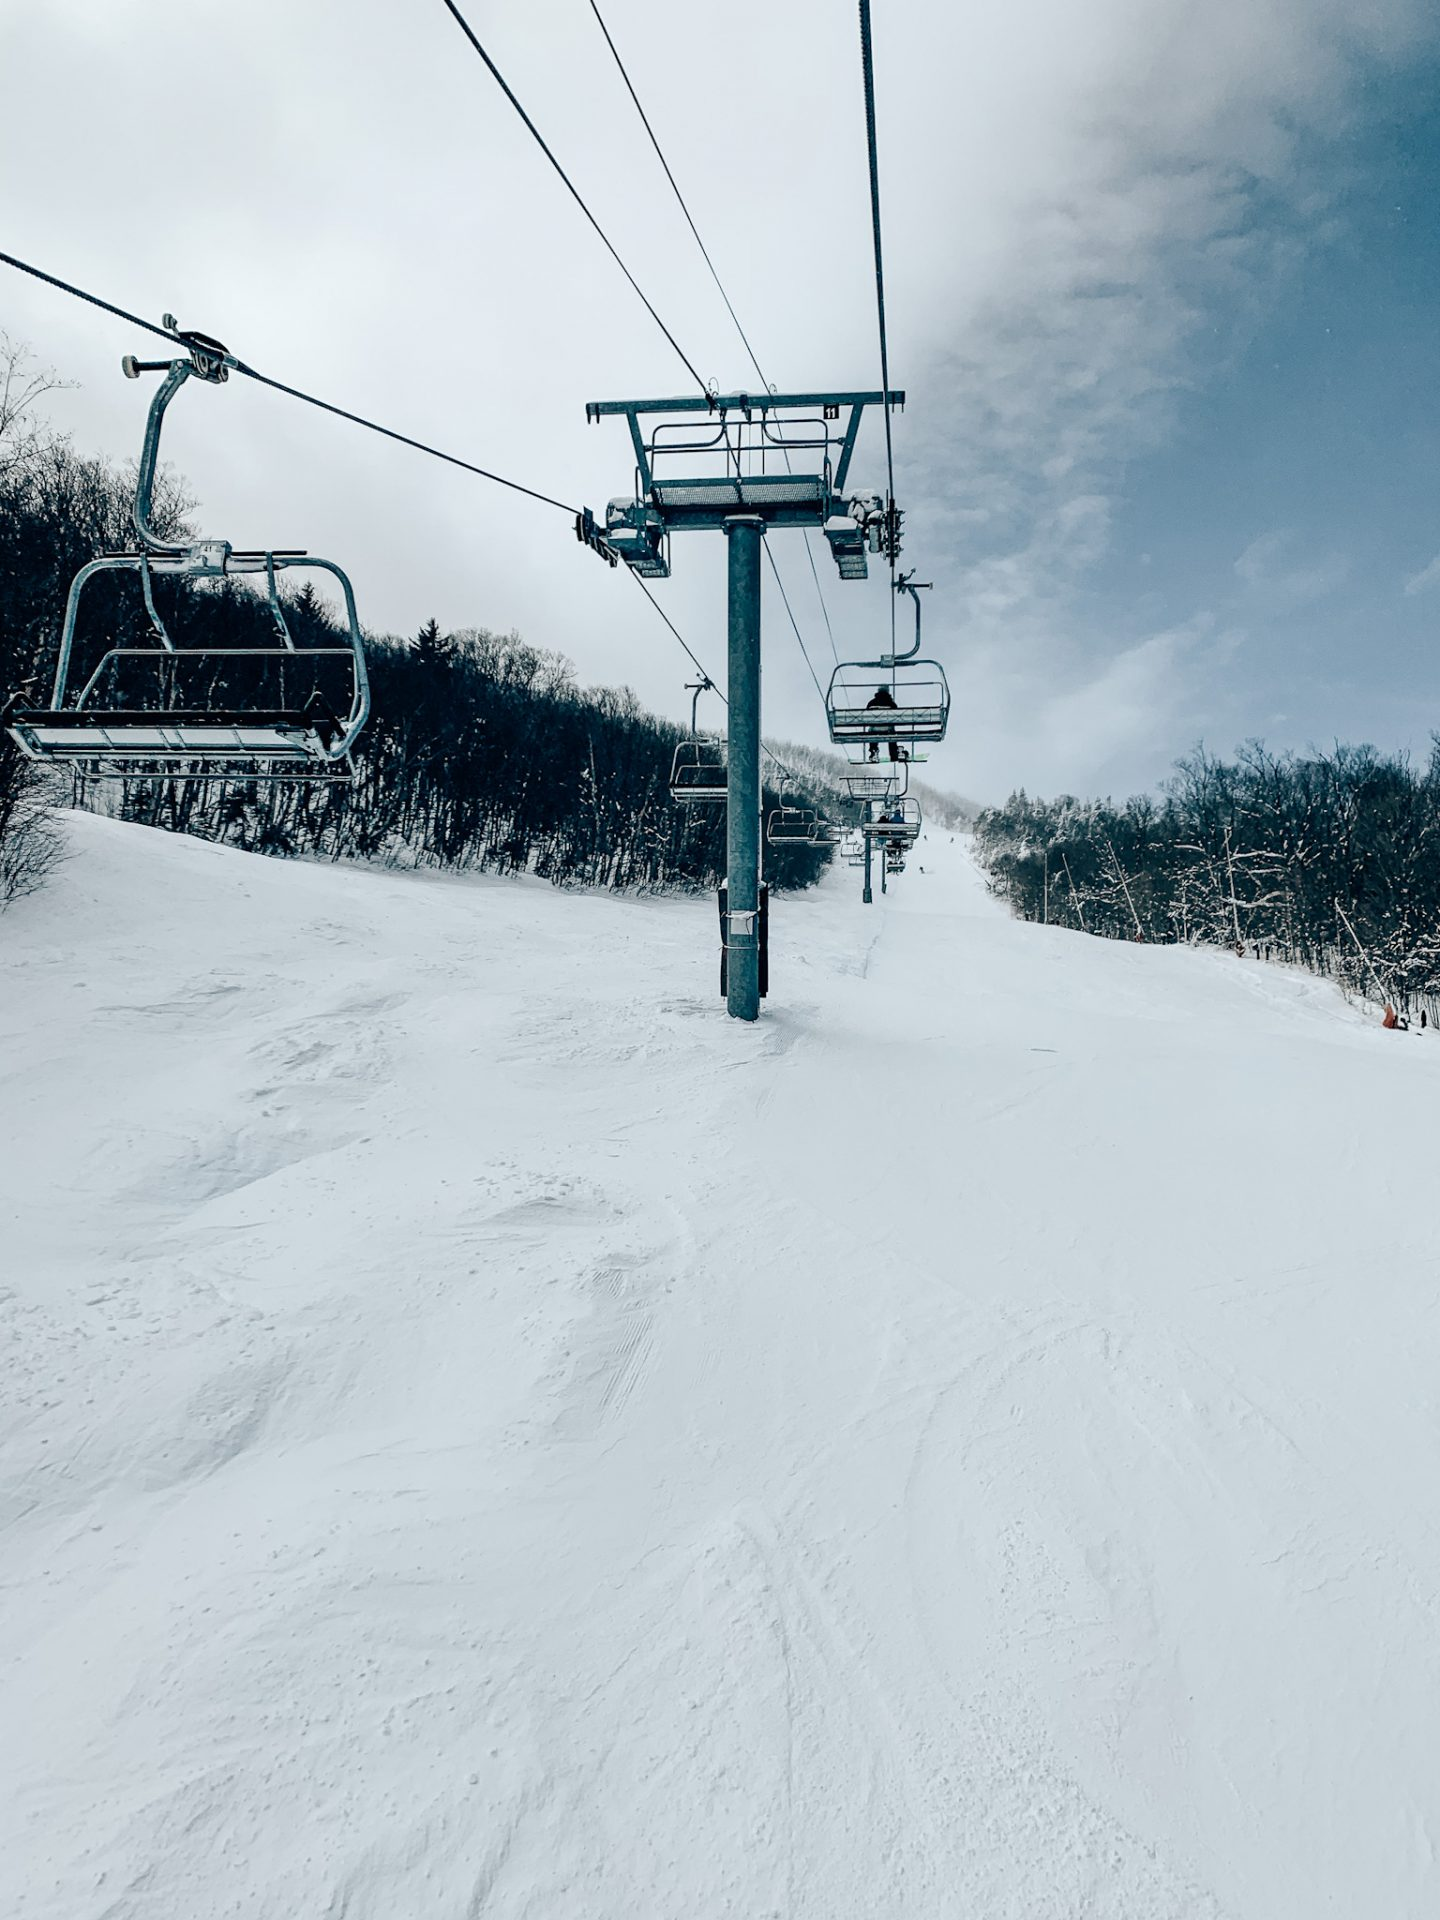 Chairlift photo at Stowe, Vermont